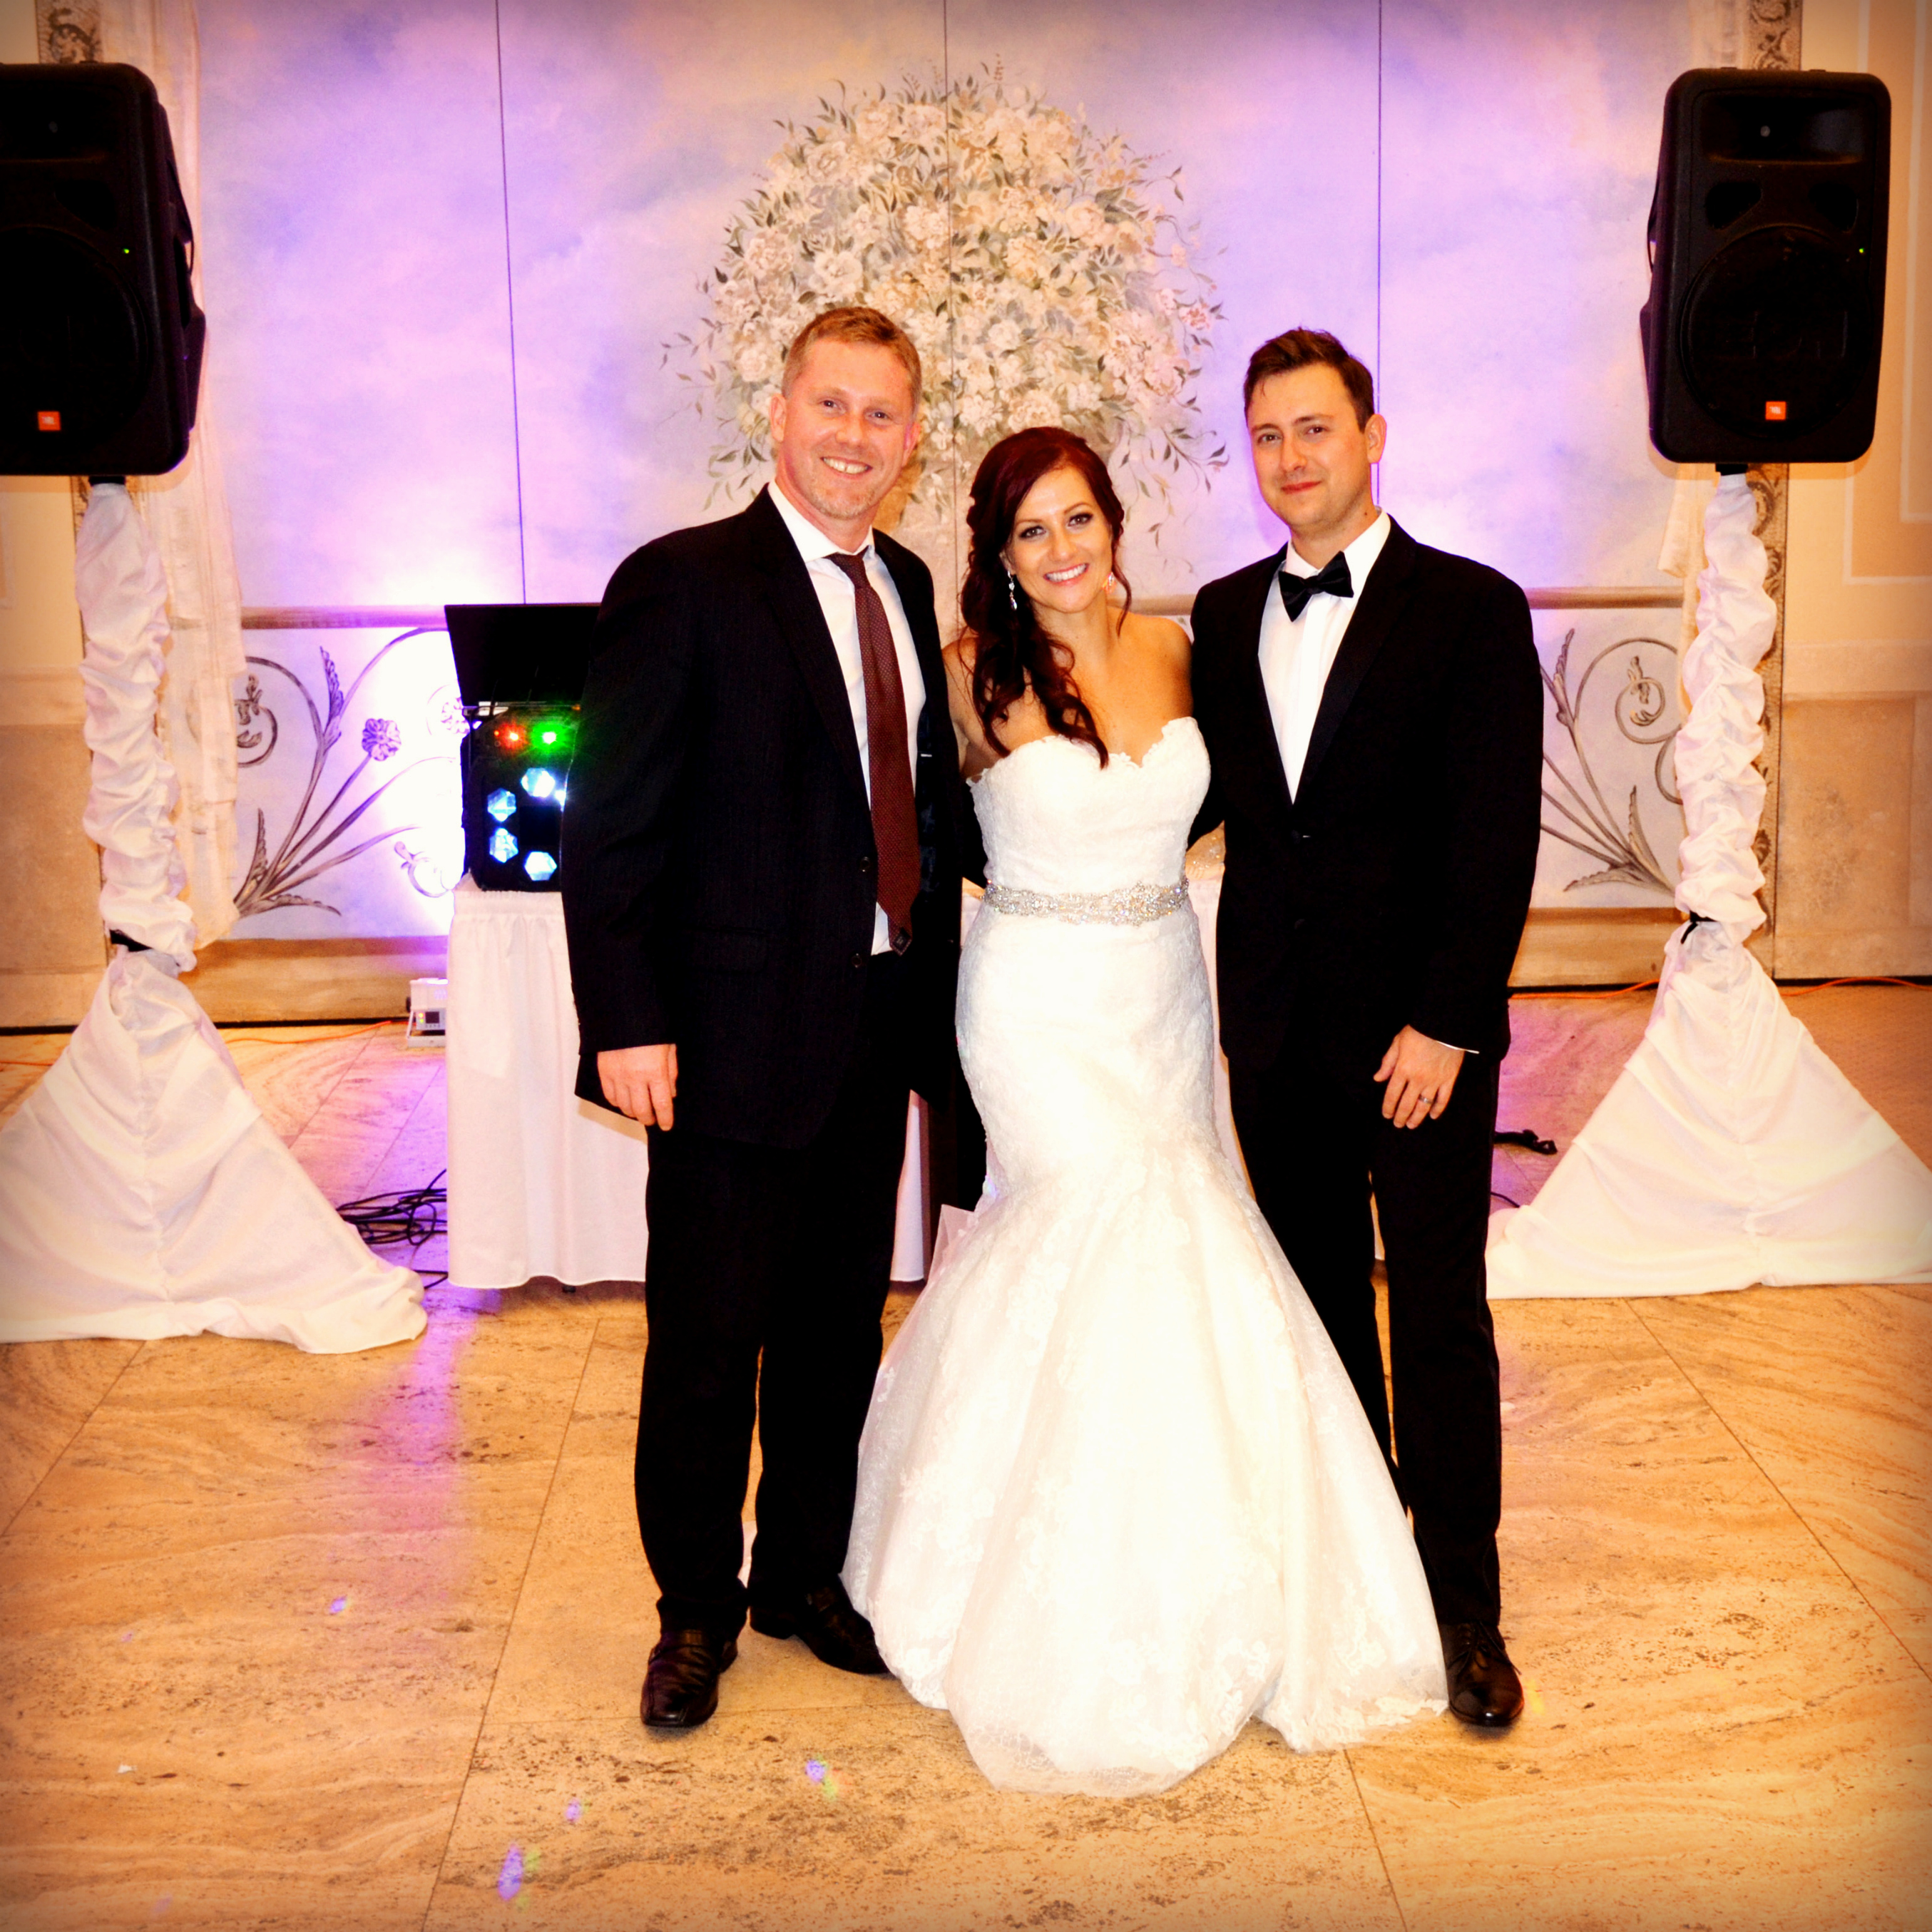 2016.09.03 Polish American Wedding DJ Majk - Justyna & Krzysztof Wedding at Meridian Banquets, Rolli